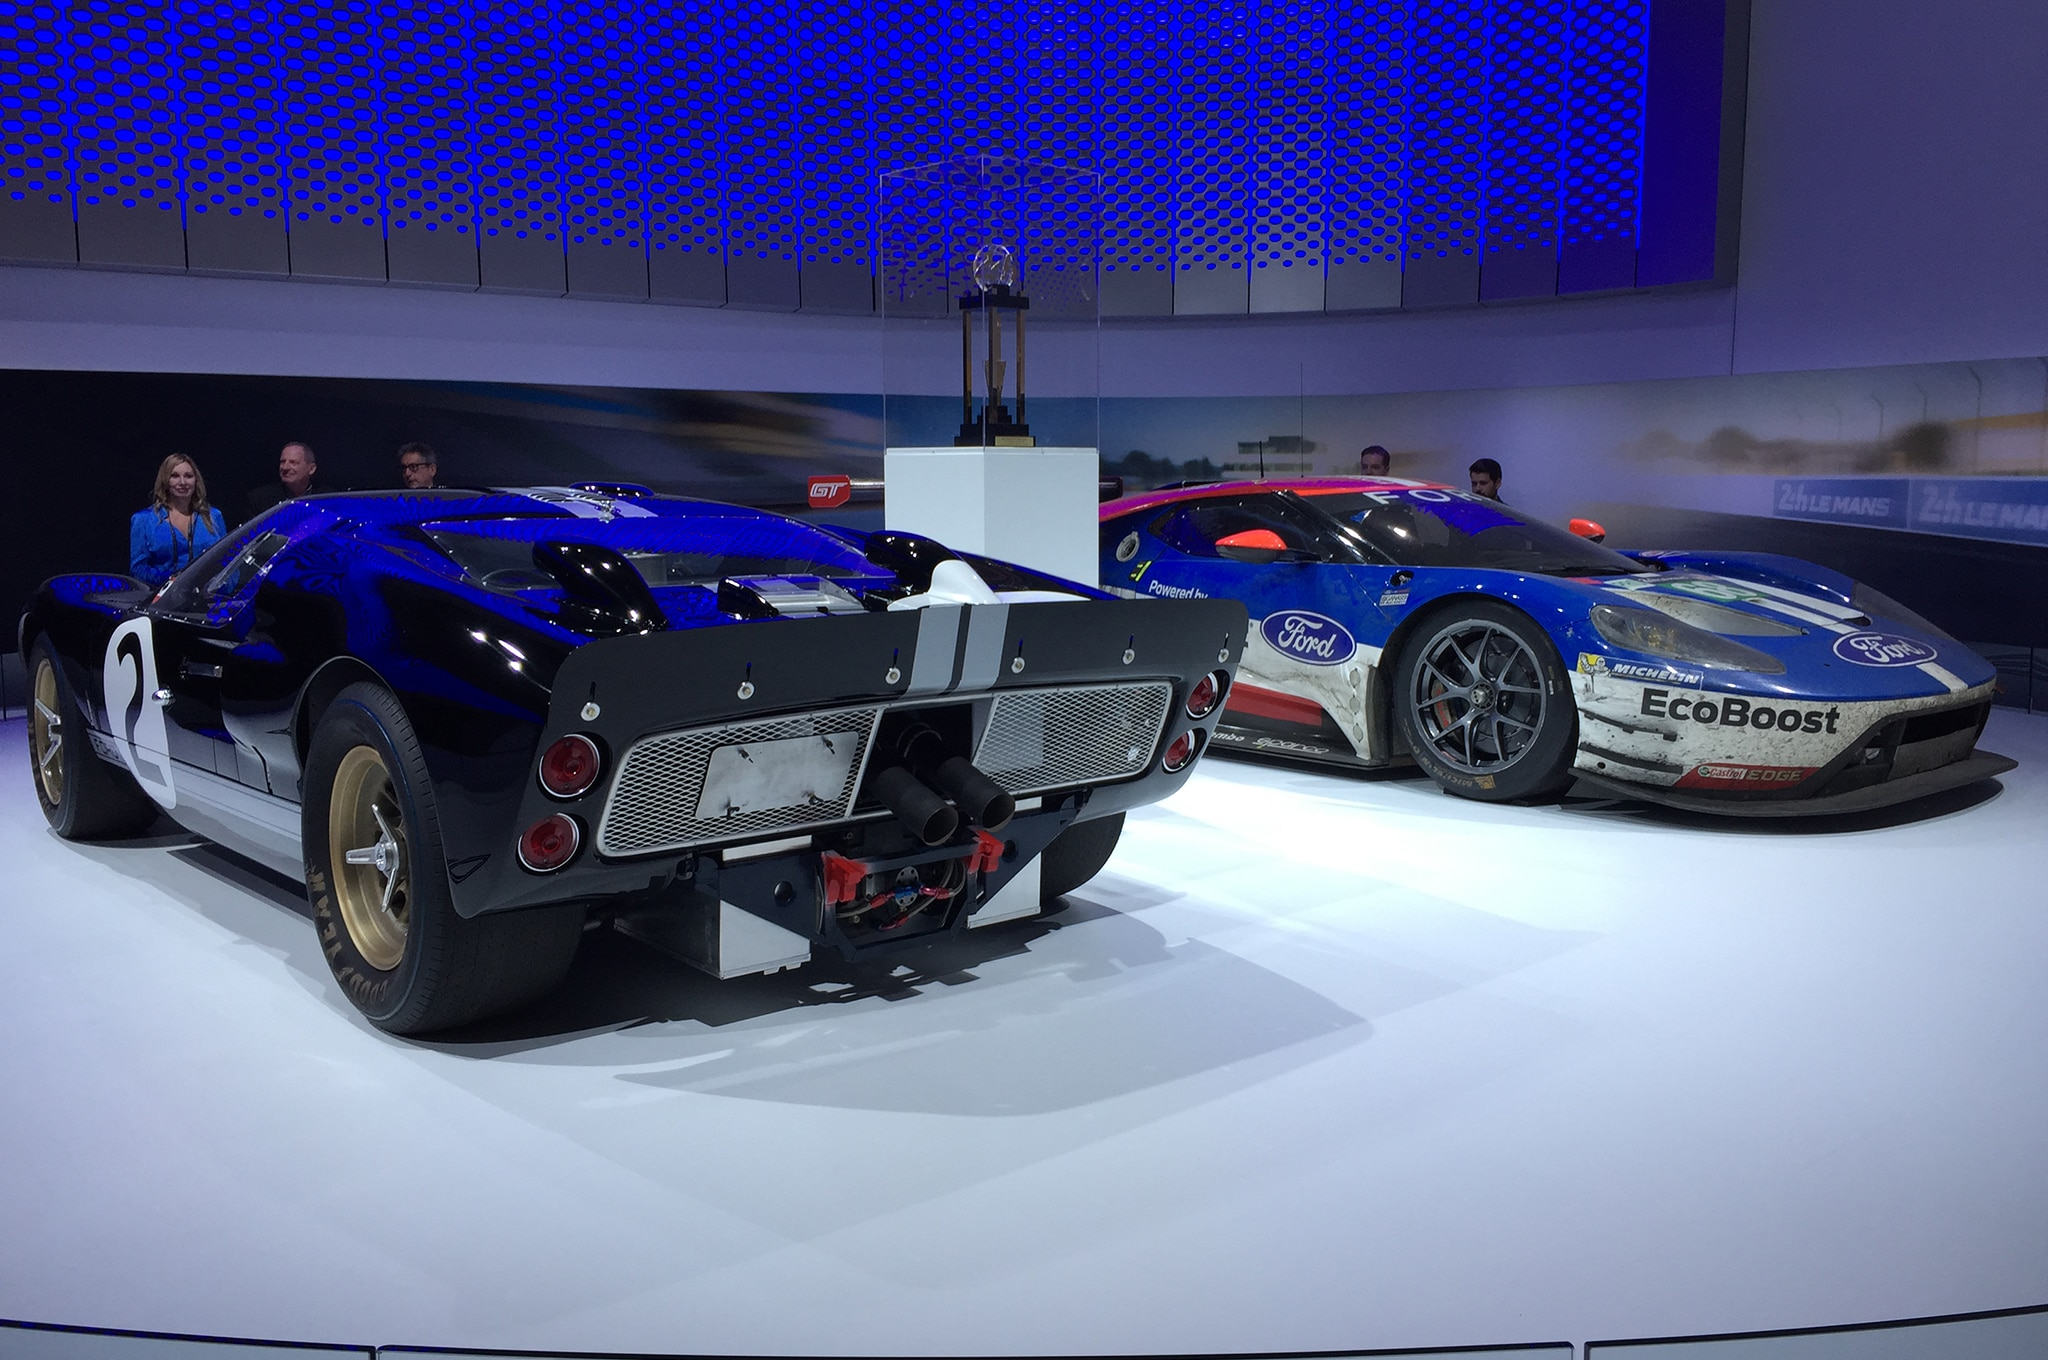 1966 Ford GT40 Mk II And 2016 Ford GT Le Mans